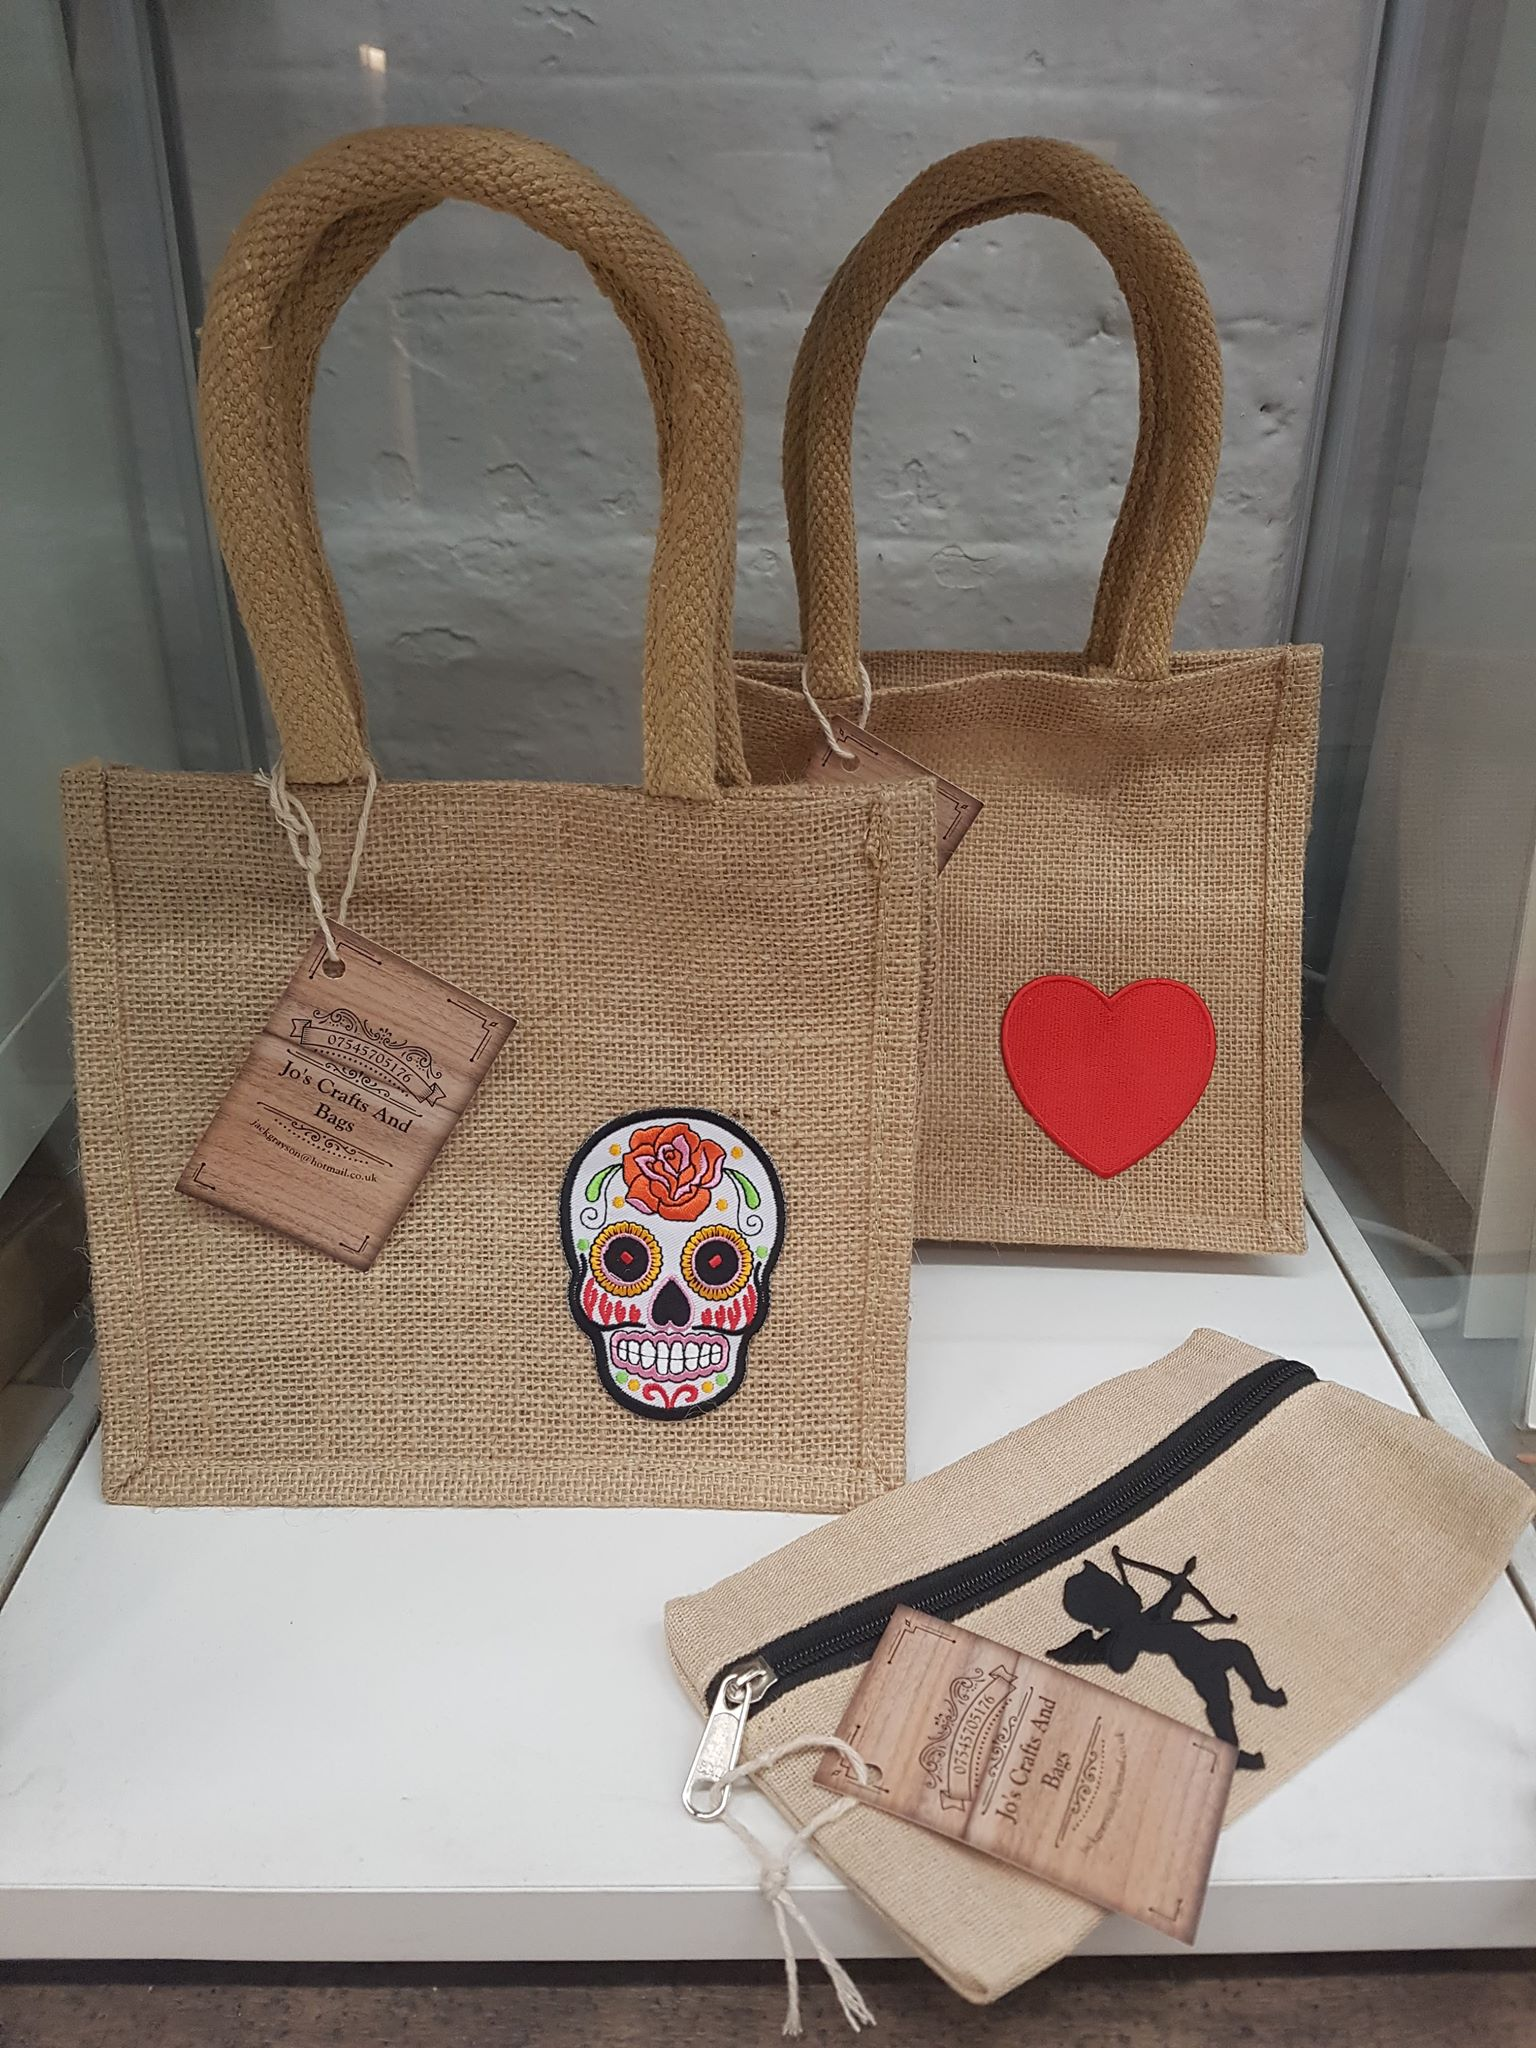 Jo's Crafts & Bags, Pencil cases and Jute Bags from £5